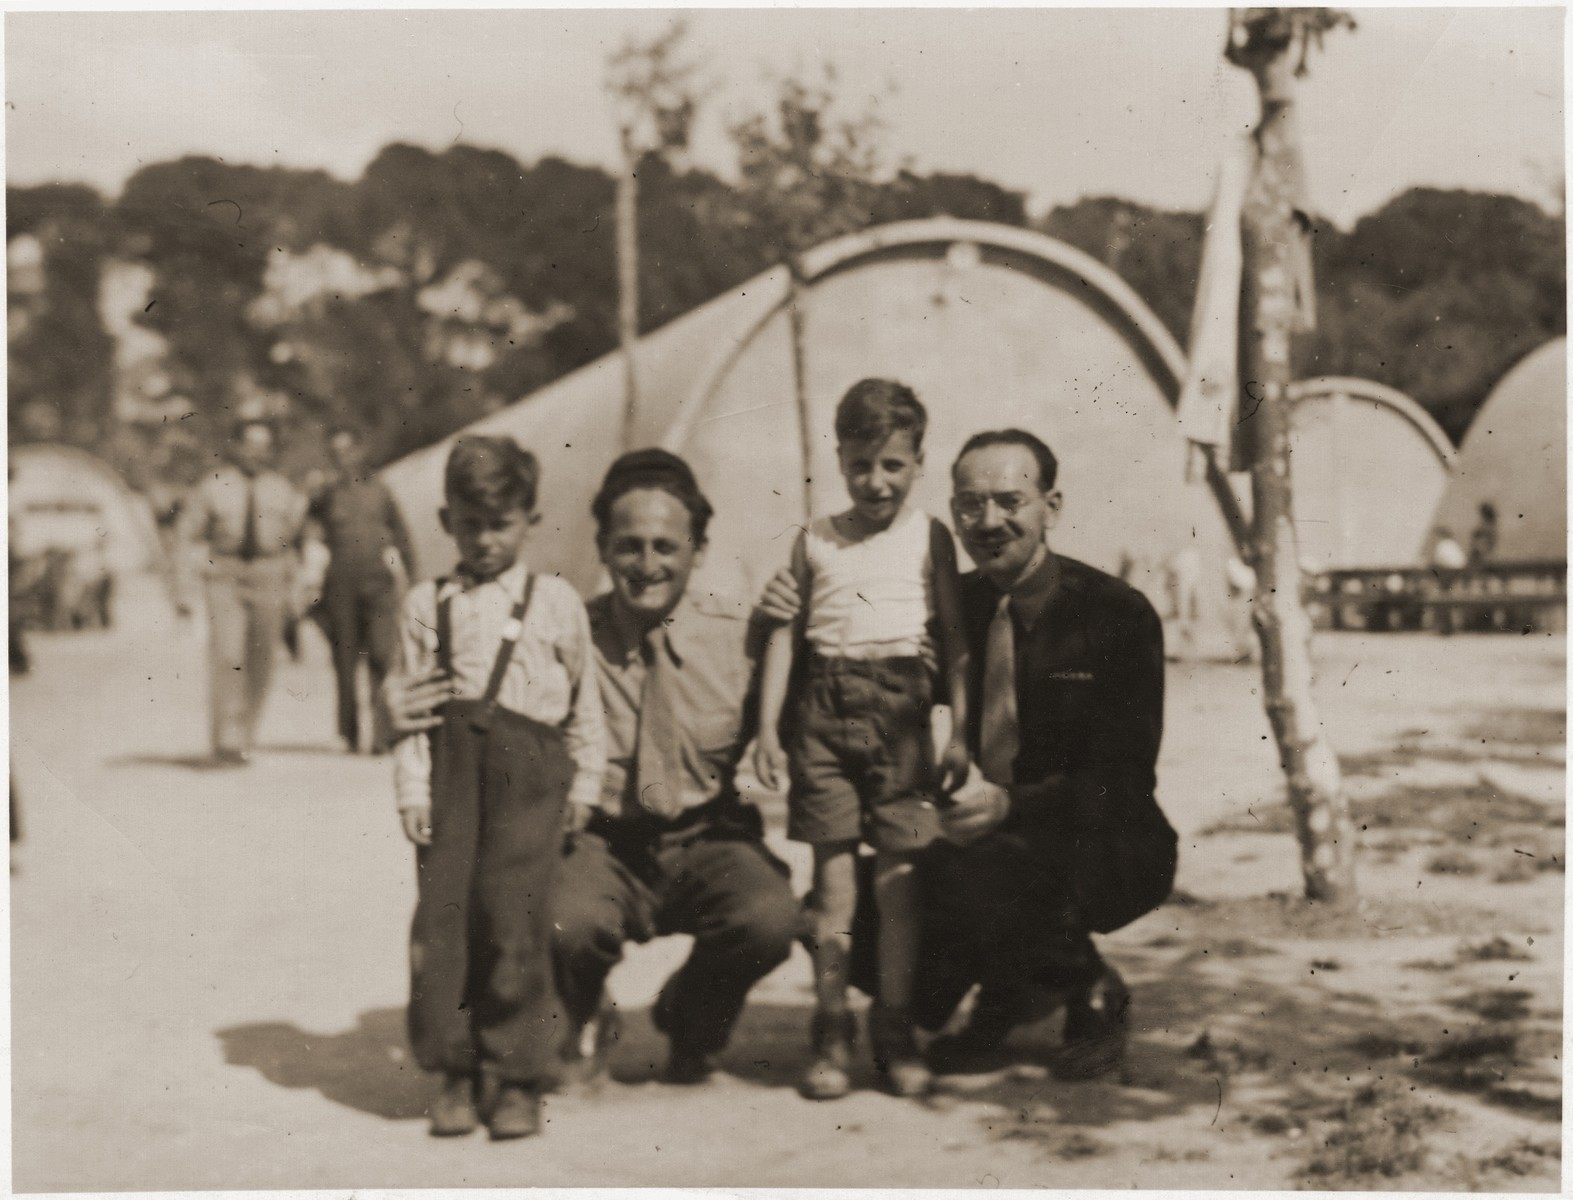 Two Jewish orphans pose with two relief workers at the Marsylia transit camp (a former Yugoslav POW camp) in Marseilles, where they await their departure for Palestine aboard the SS Champollion.    The two boys belong to a group from the Bergen-Belsen displaced persons' camp who have been selected for the first authorized children's transport to Palestine.